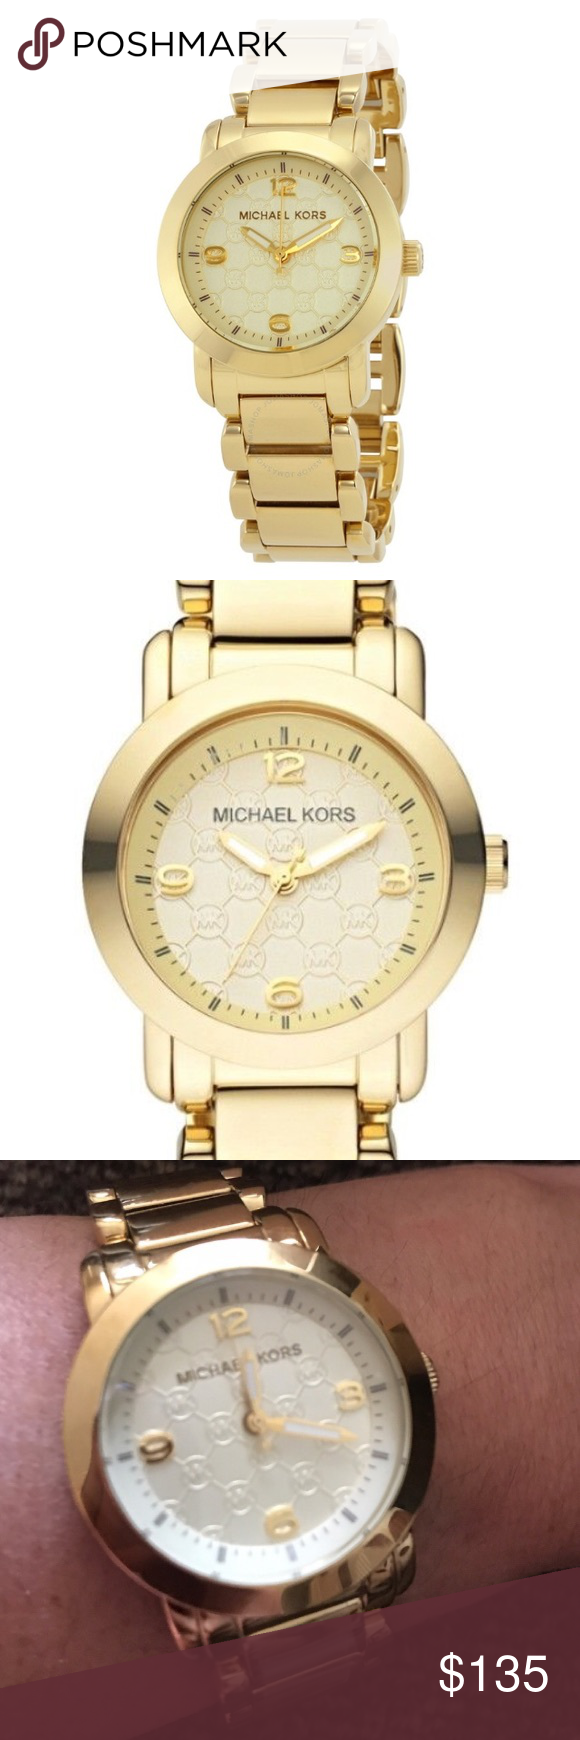 8779fa95fede NWT MICHAEL KORS GOLD TONE MK LOGO WATCH This is BRAND NEW with plastic  over face and behind dial. Never worn just modeled for this advertisement.